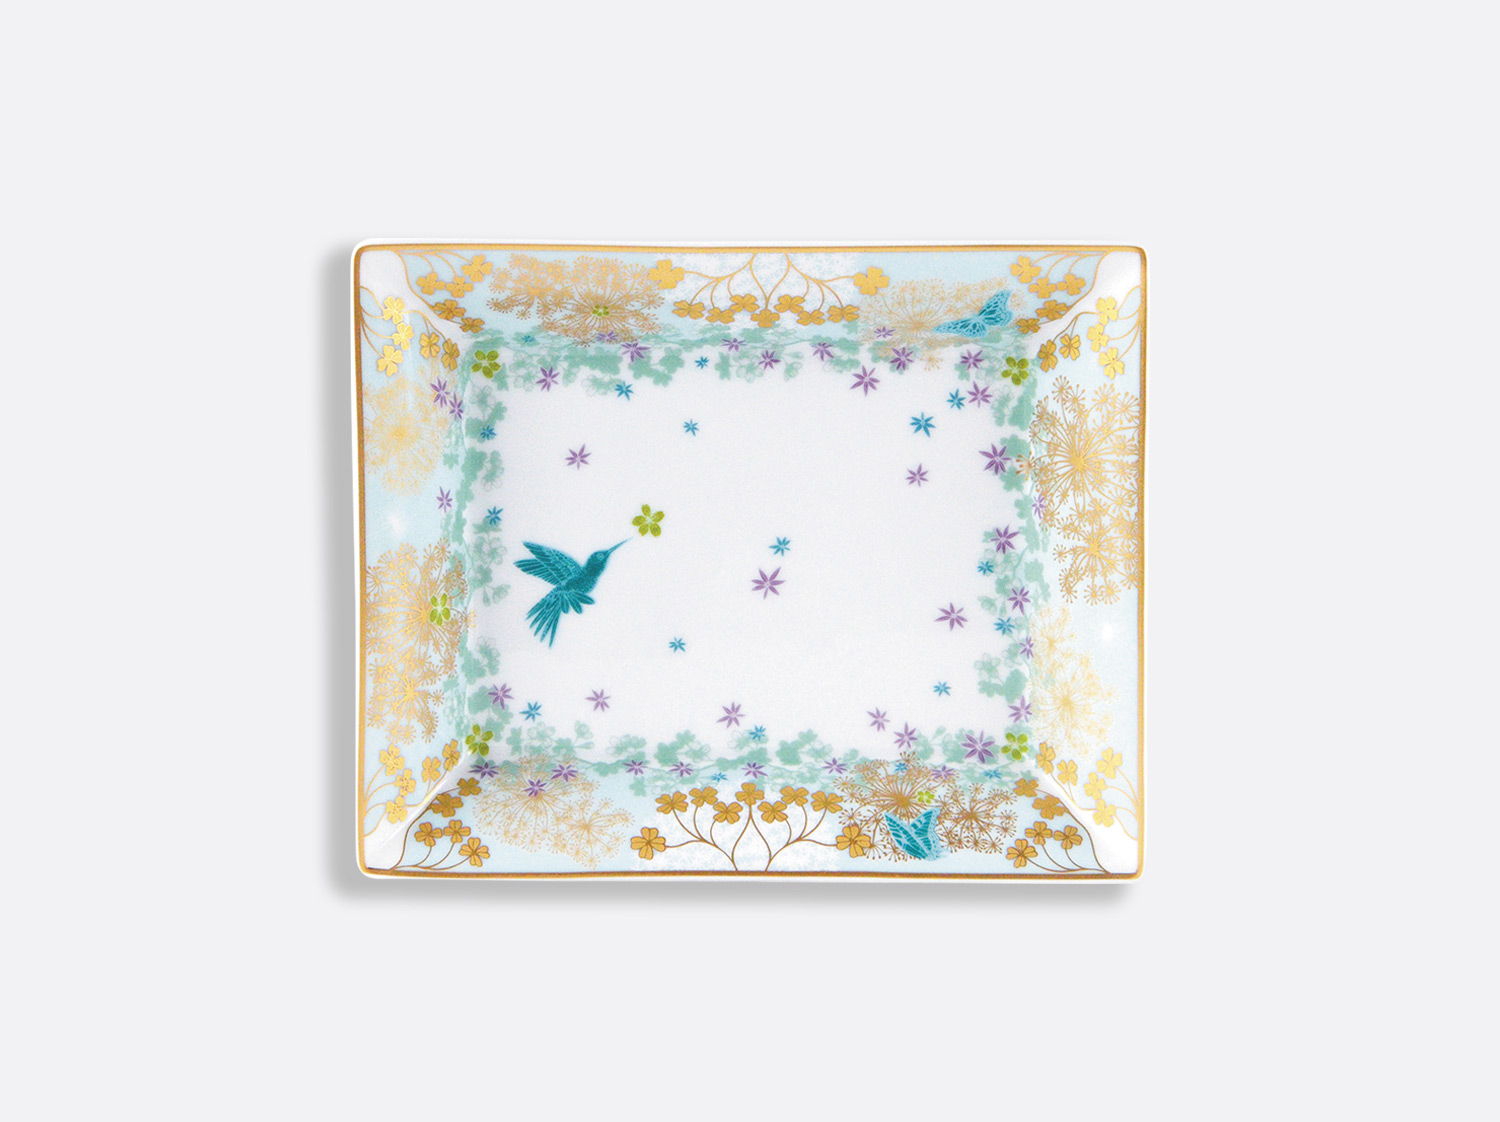 China Valet tray 16 x 20 cm of the collection FÉERIE - MICHAËL CAILLOUX | Bernardaud